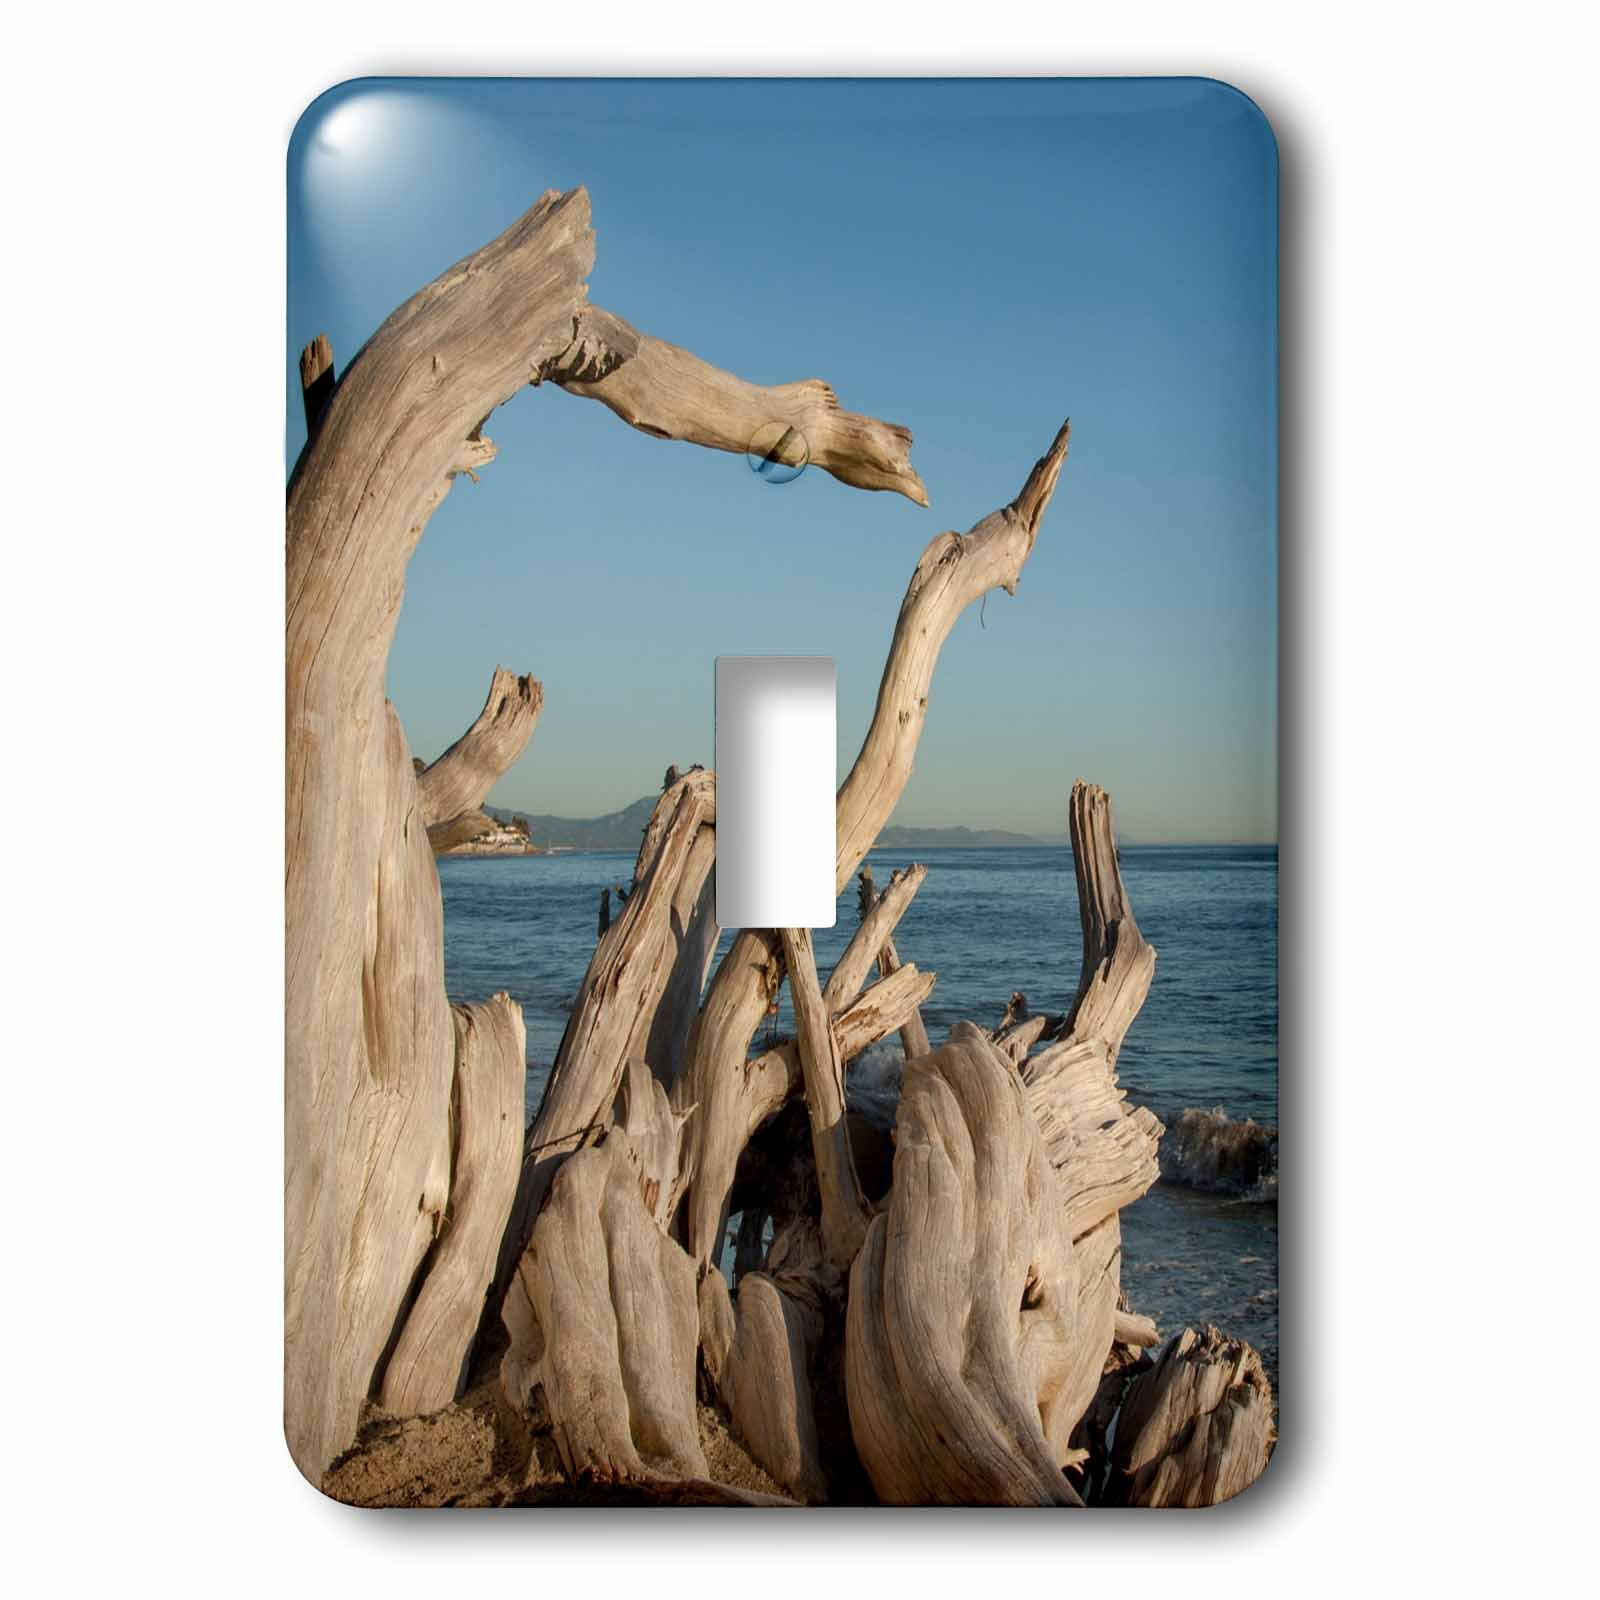 3dRose LSP_229819_1 USA, California, Santa Barbara, Montecito, Butterfly Beach, Driftwood Toggle Switch, Mixed by 3dRose